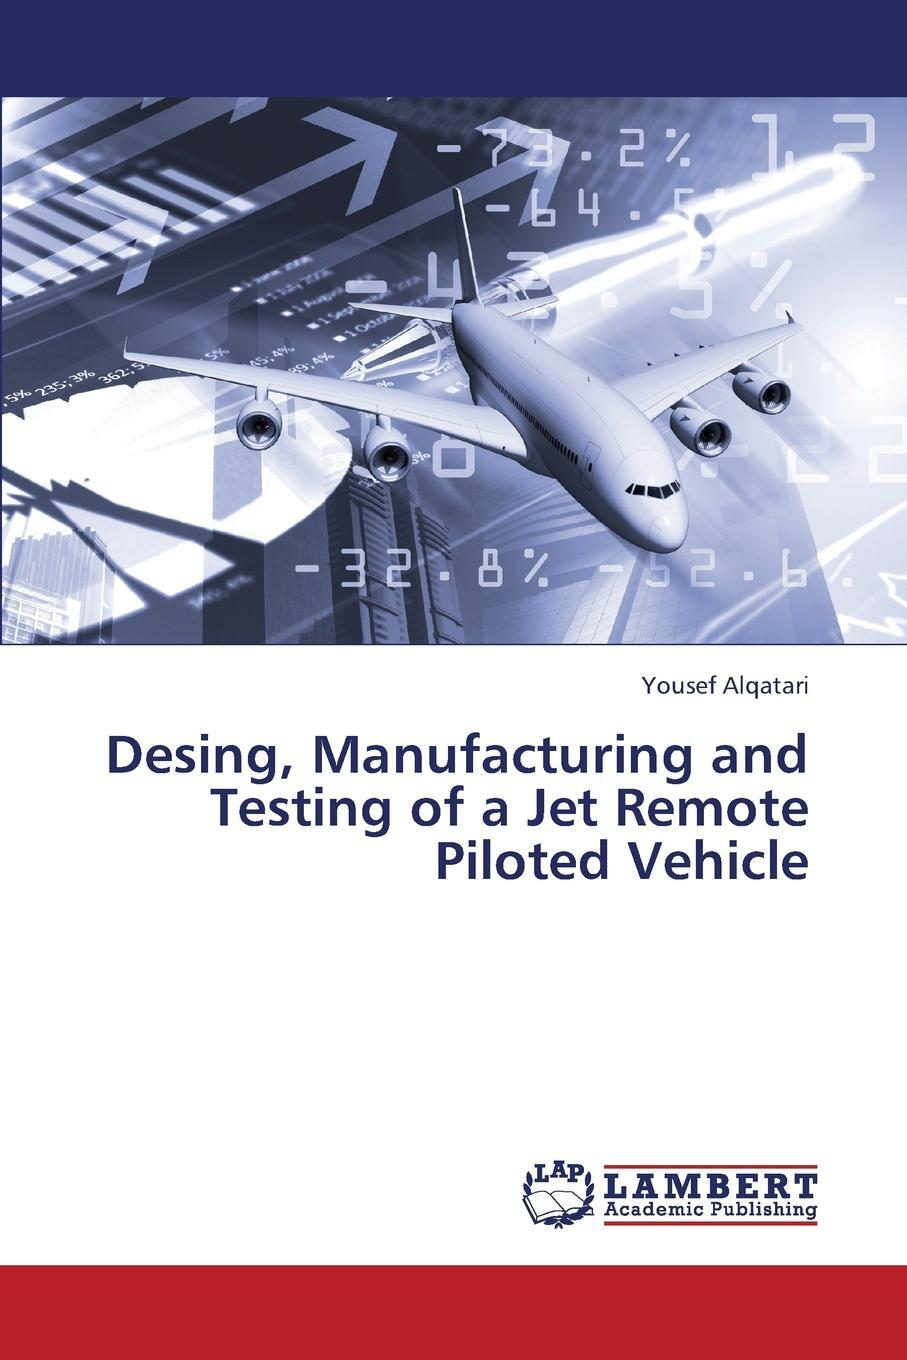 Desing, Manufacturing and Testing of a Jet Remote Piloted Vehicle